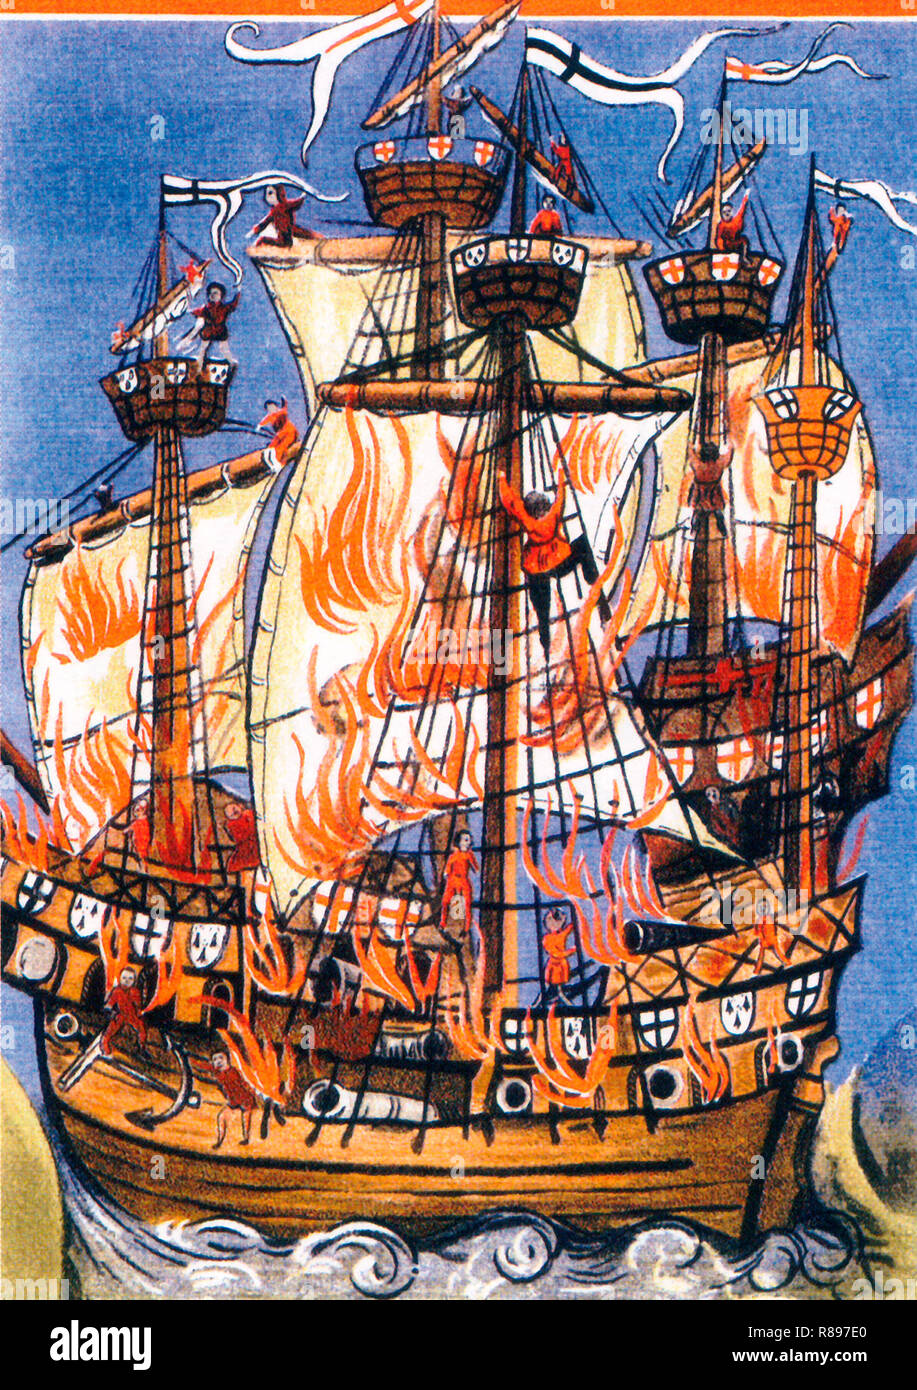 The French warship Cordelière and the English warship Regent ablaze at the battle of St. Mathieu on August 10 1512. Illustration for an epic poem in Latin written by the court poet Germain de Brie. - Stock Image